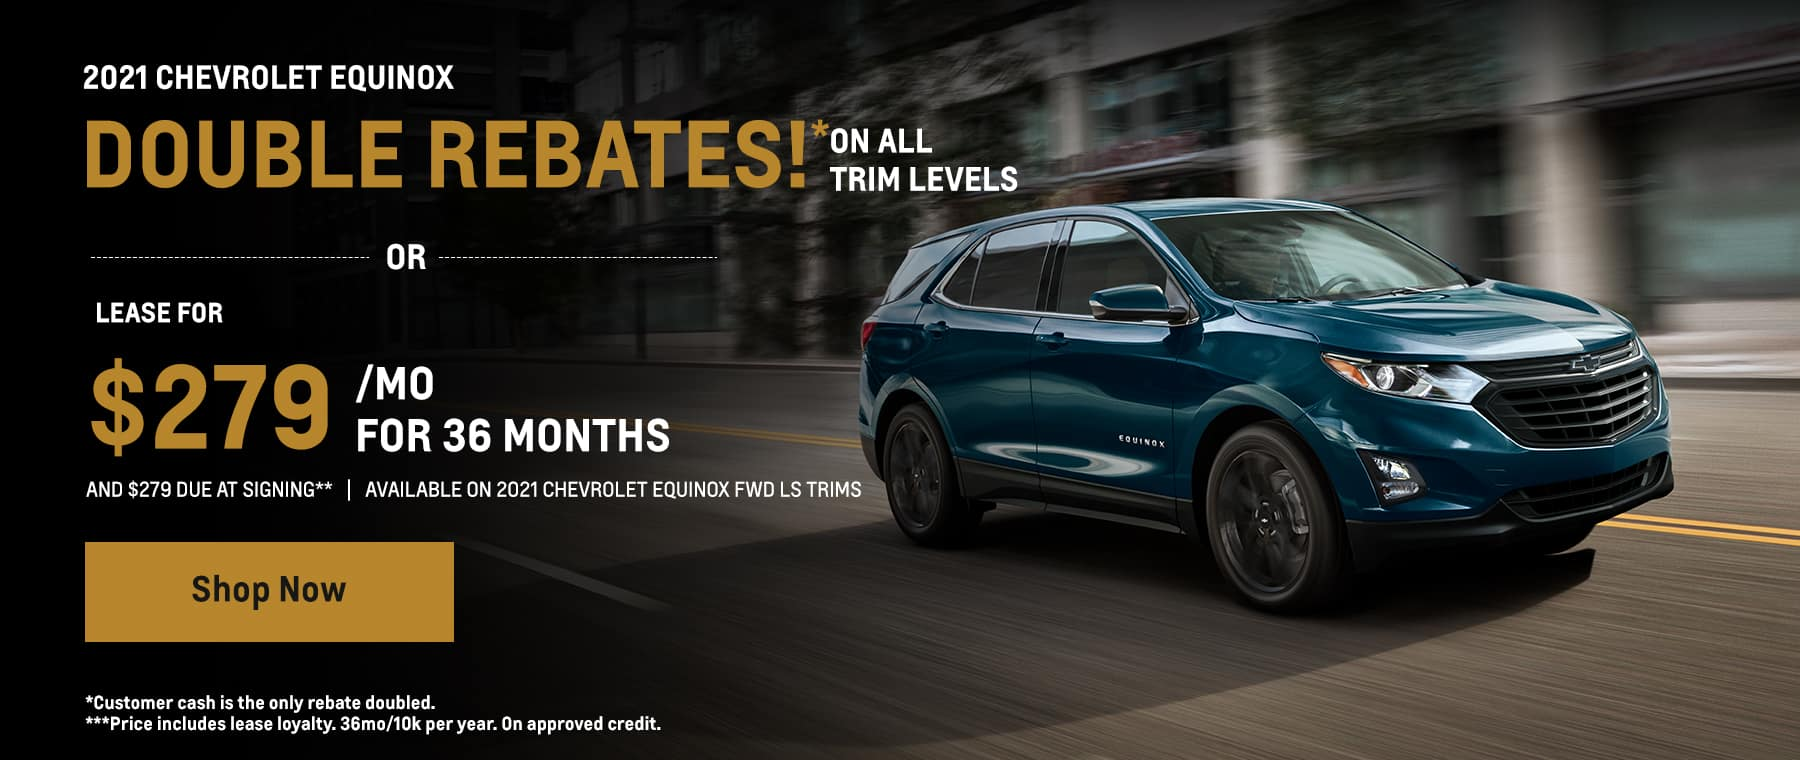 2021 Equinox double rebates or lease for $279/mo